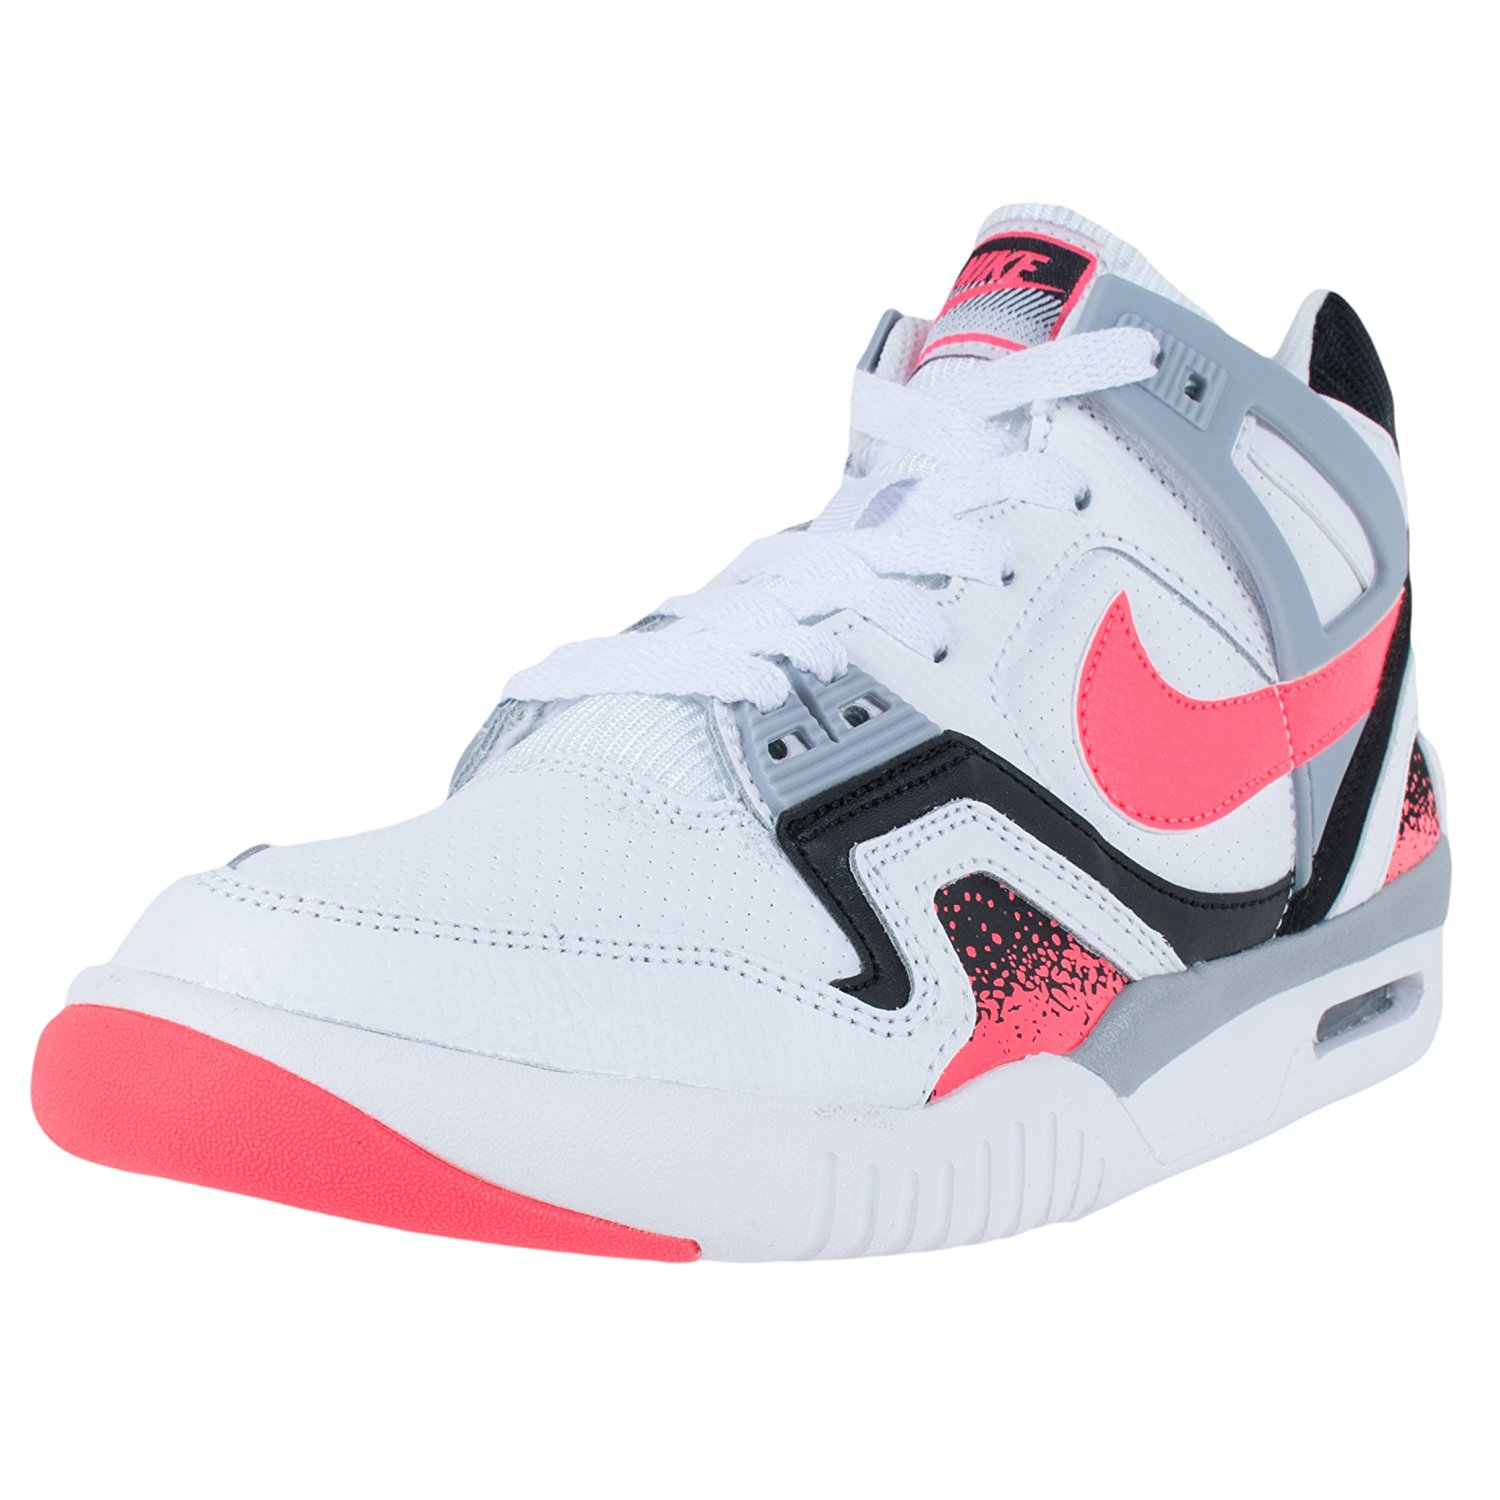 brand new a0ae3 401d8 Get Quotations · NIKE BOYS AIR TECH CHALLENGE 2 GS TENNIS SHOES WHITE HYPER  PUNCH 654435 101